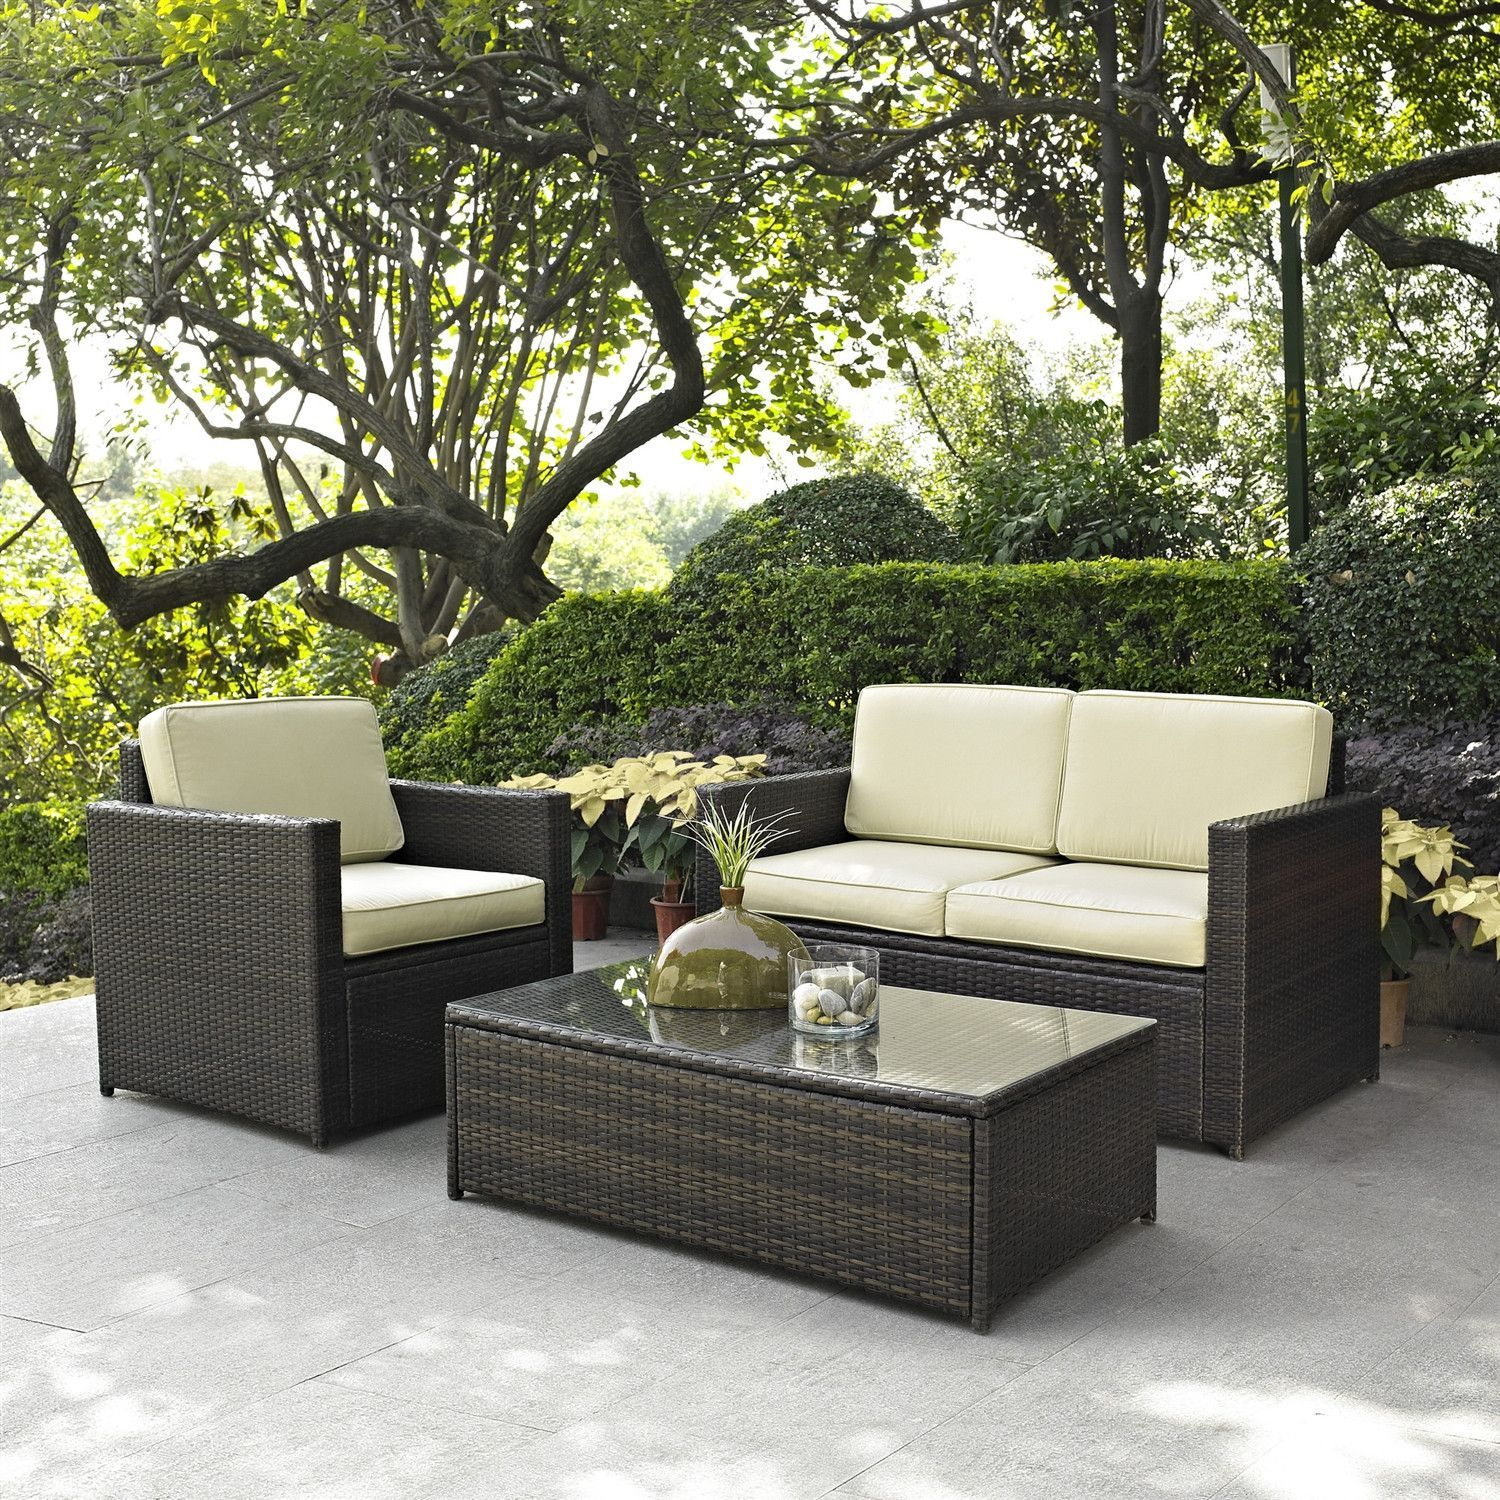 3 Piece Outdoor Patio Furniture Set With Chair Loveseat And